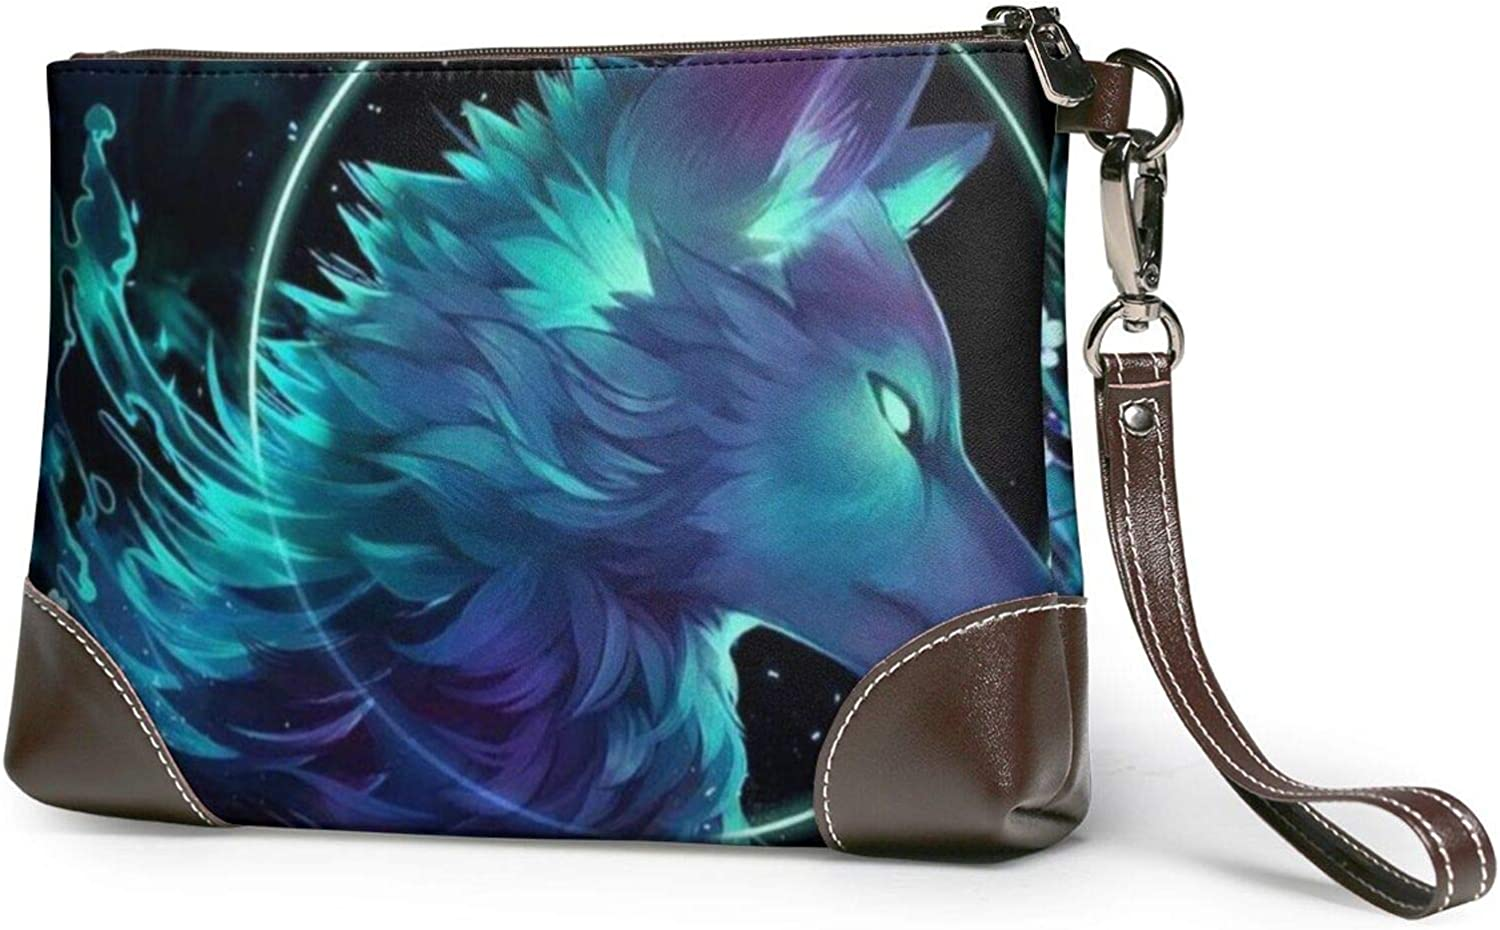 Anime Wolf Clutch Cheap sale Purses Wristlet Leather Wallet Some reservation H